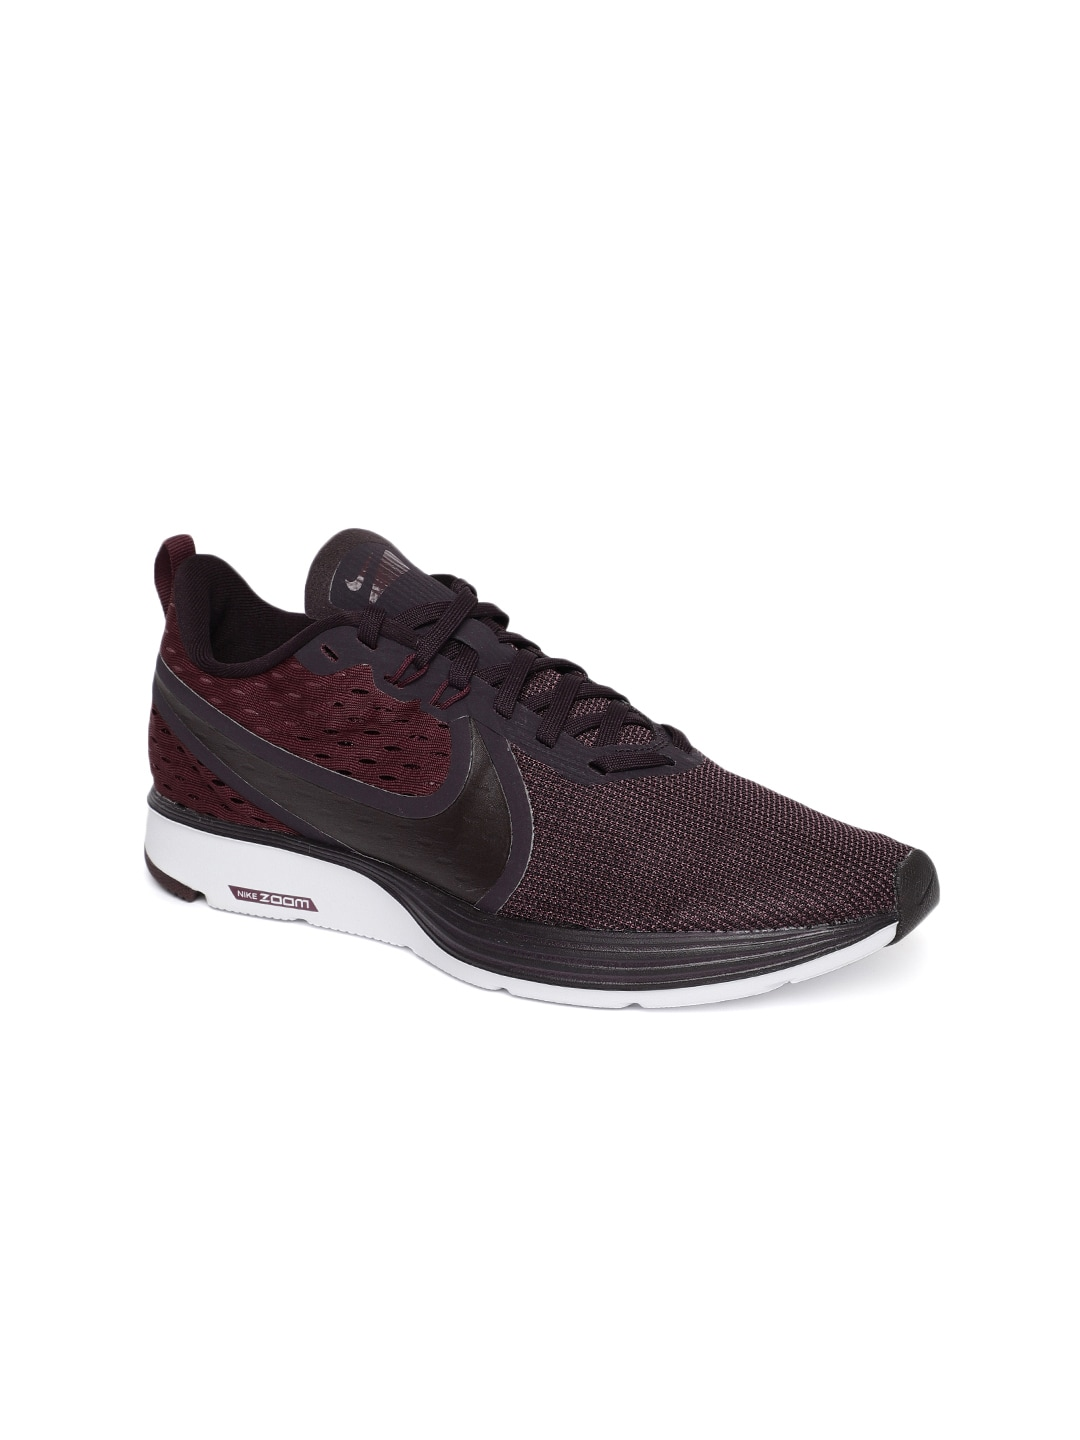 c31570842f584 Nike Zoom Sports Shoes - Buy Nike Zoom Sports Shoes online in India